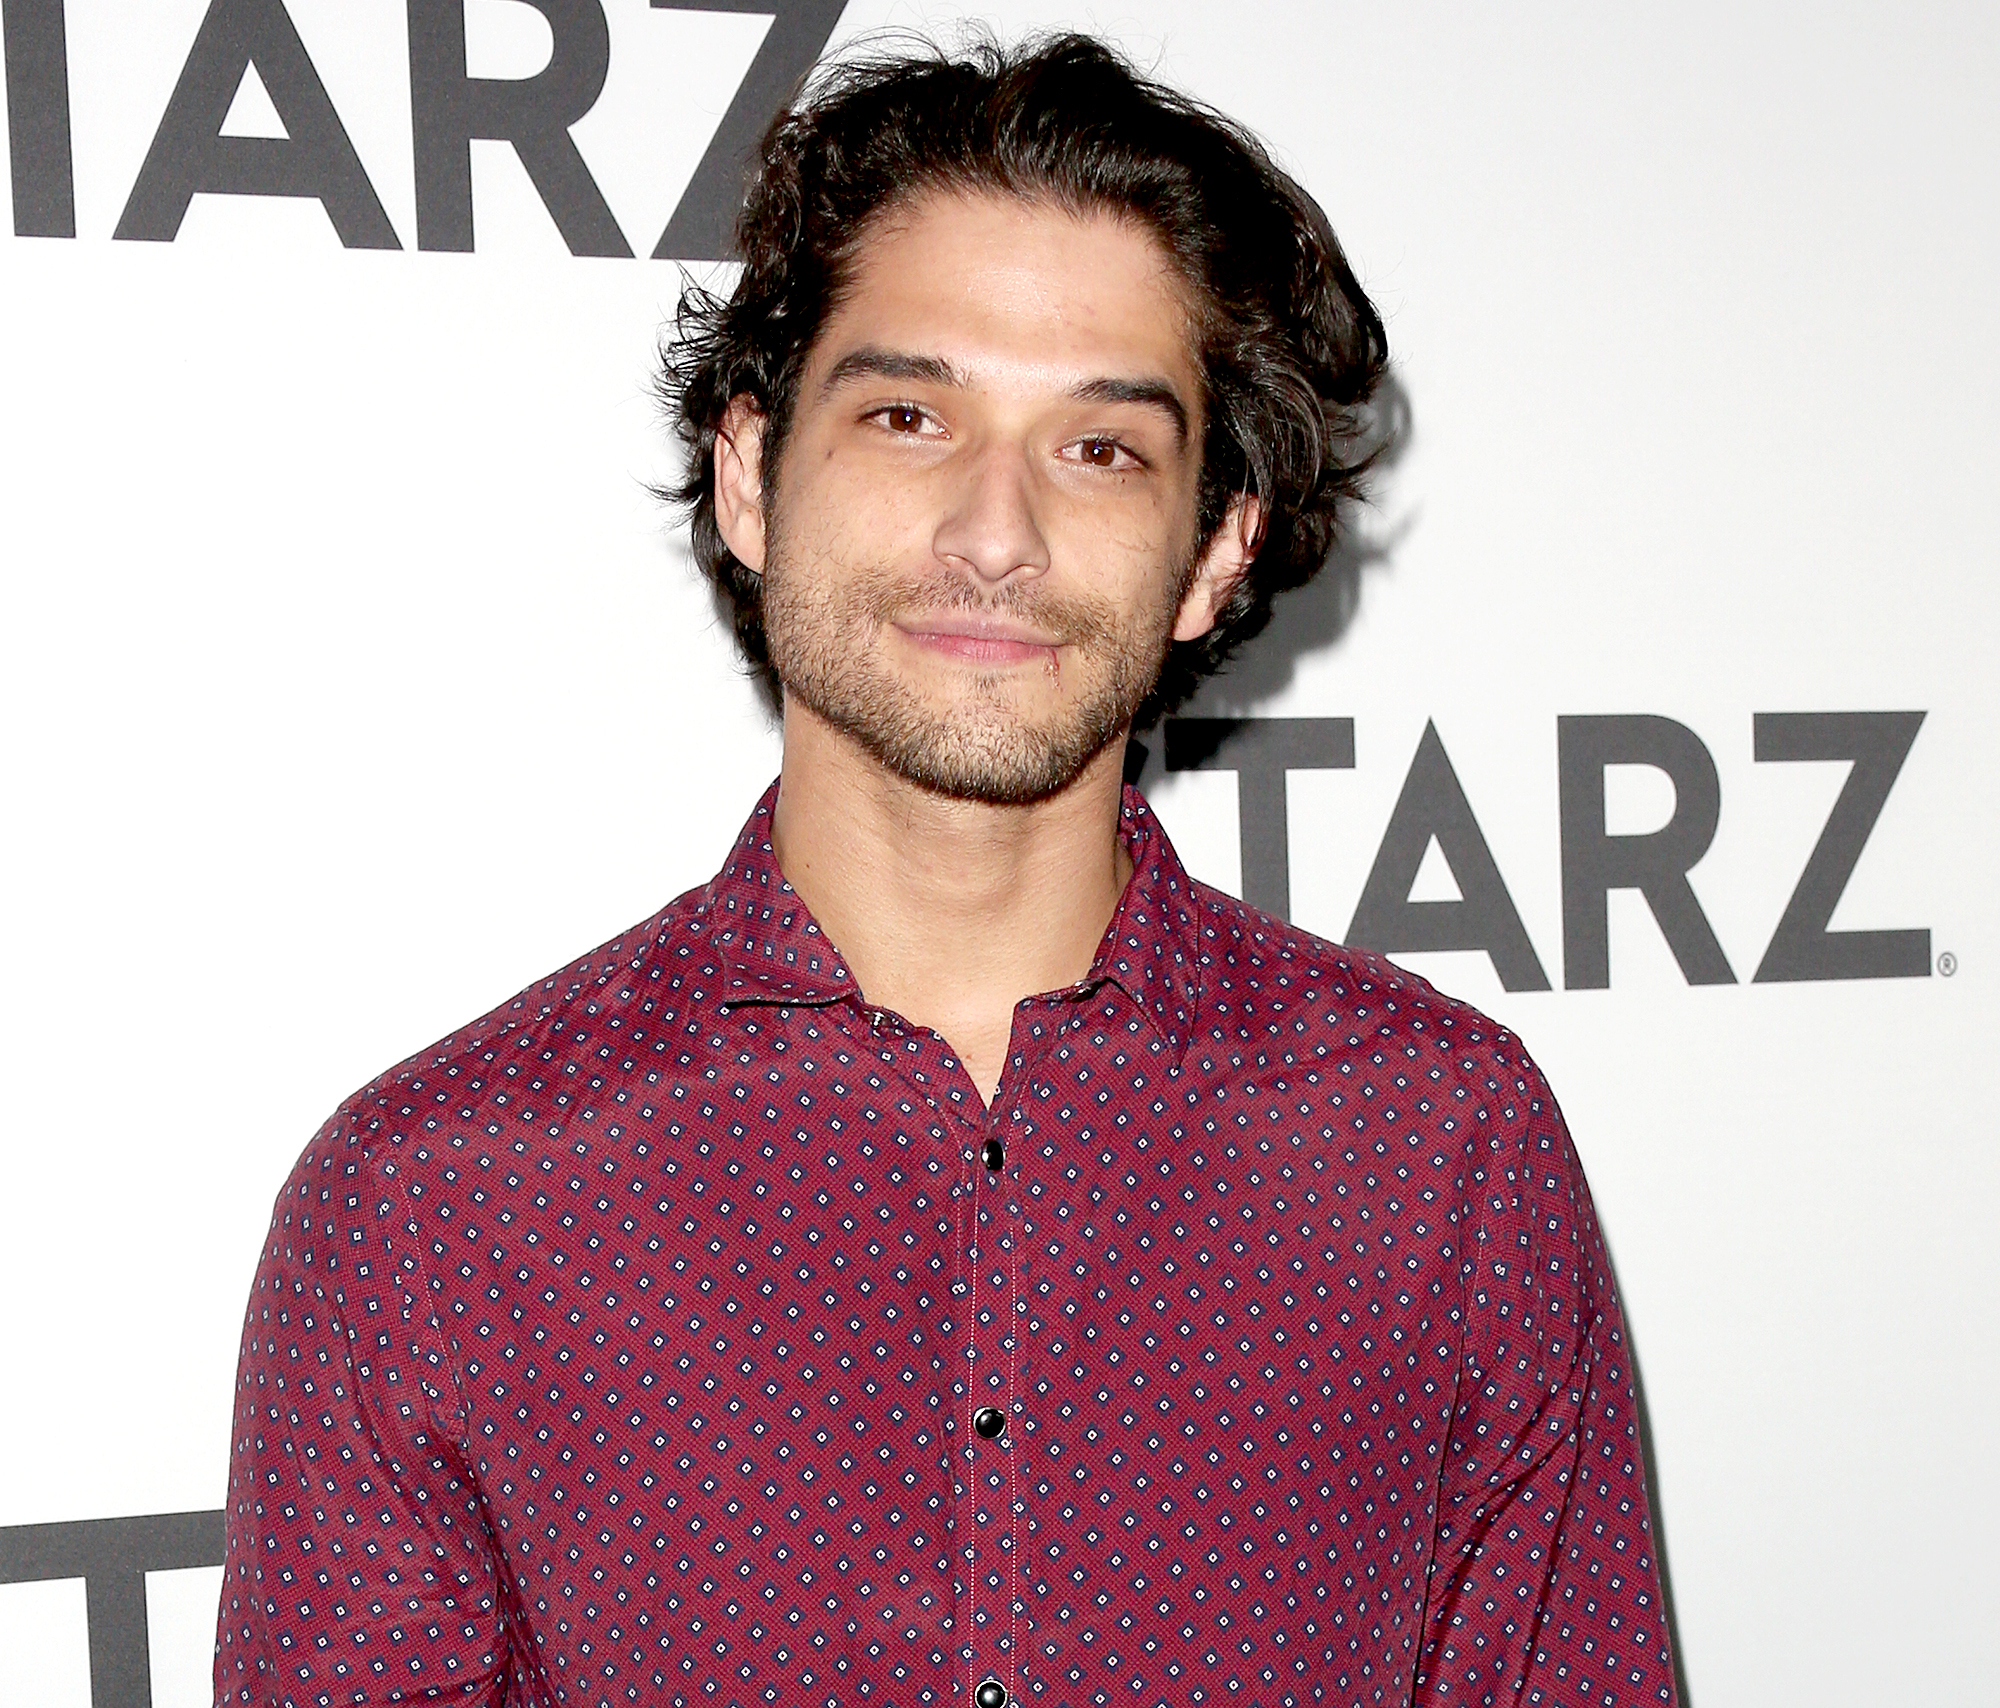 tyler-posey-talks-girlfriend - Tyler Posey attends the 2019 Winter TCA Tour – STARZ red carpet event at 71Above on February 12, 2019 in Los Angeles, California.